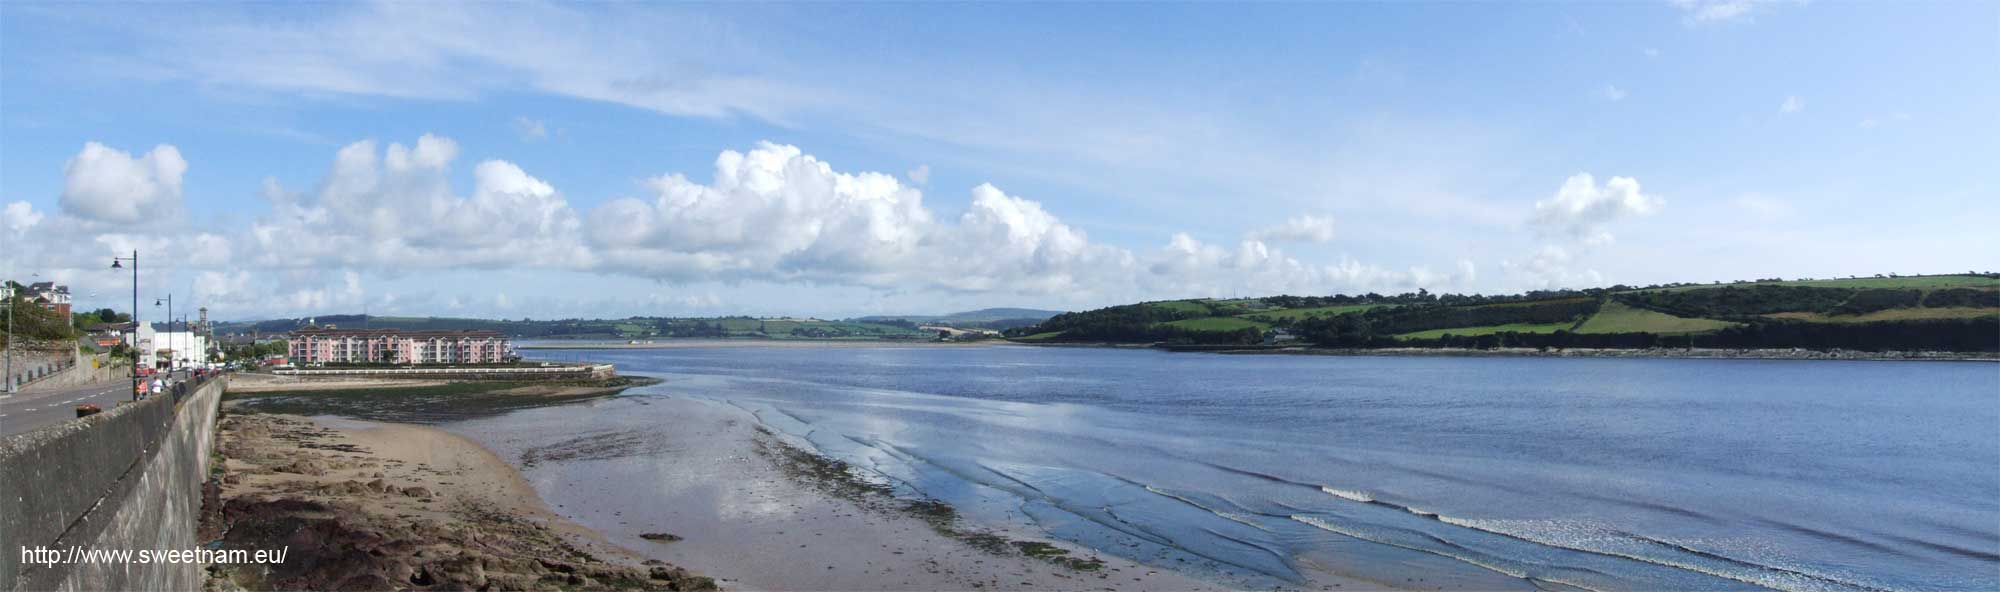 Panoramic photo of Youghal looking up the Rivert  Blackwater, taken from the viewing platform by Youghal Lighthouse.